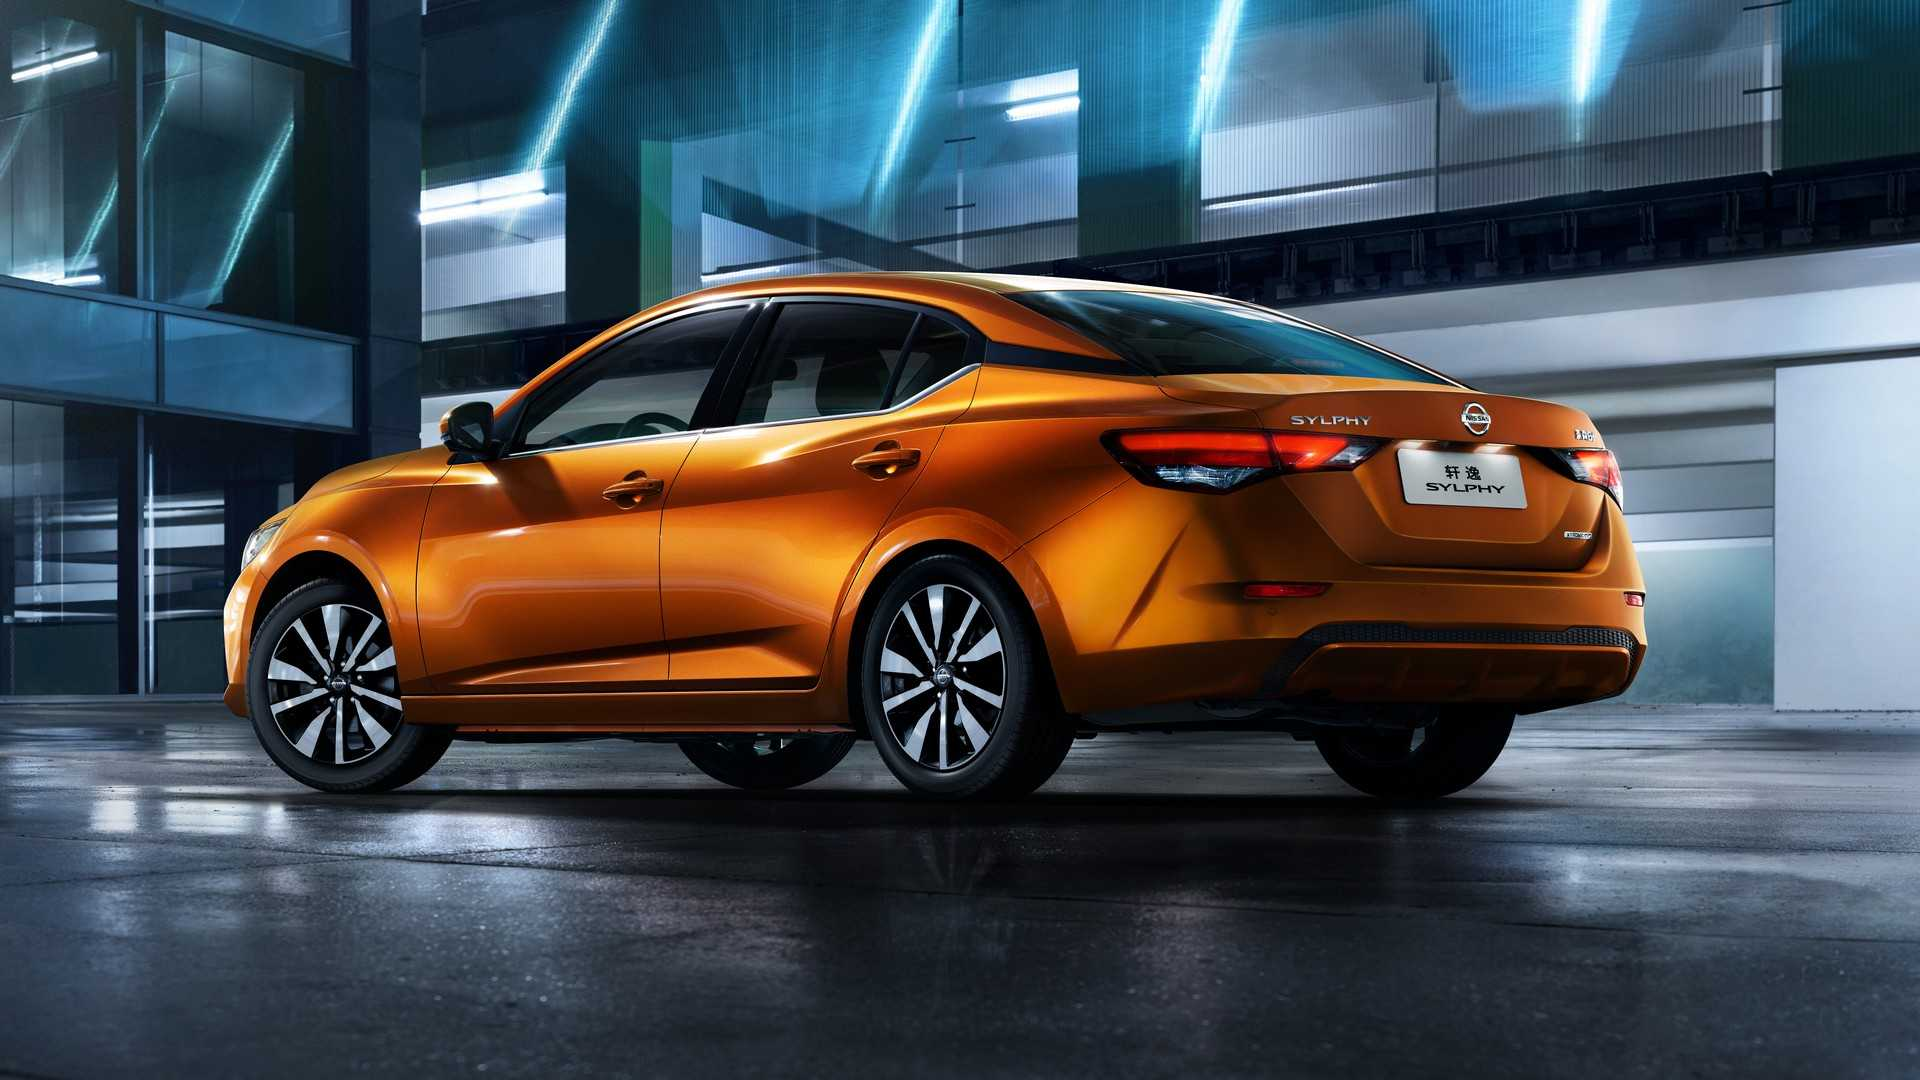 90 Gallery of Nissan Sentra 2020 Release Date Pictures with Nissan Sentra 2020 Release Date